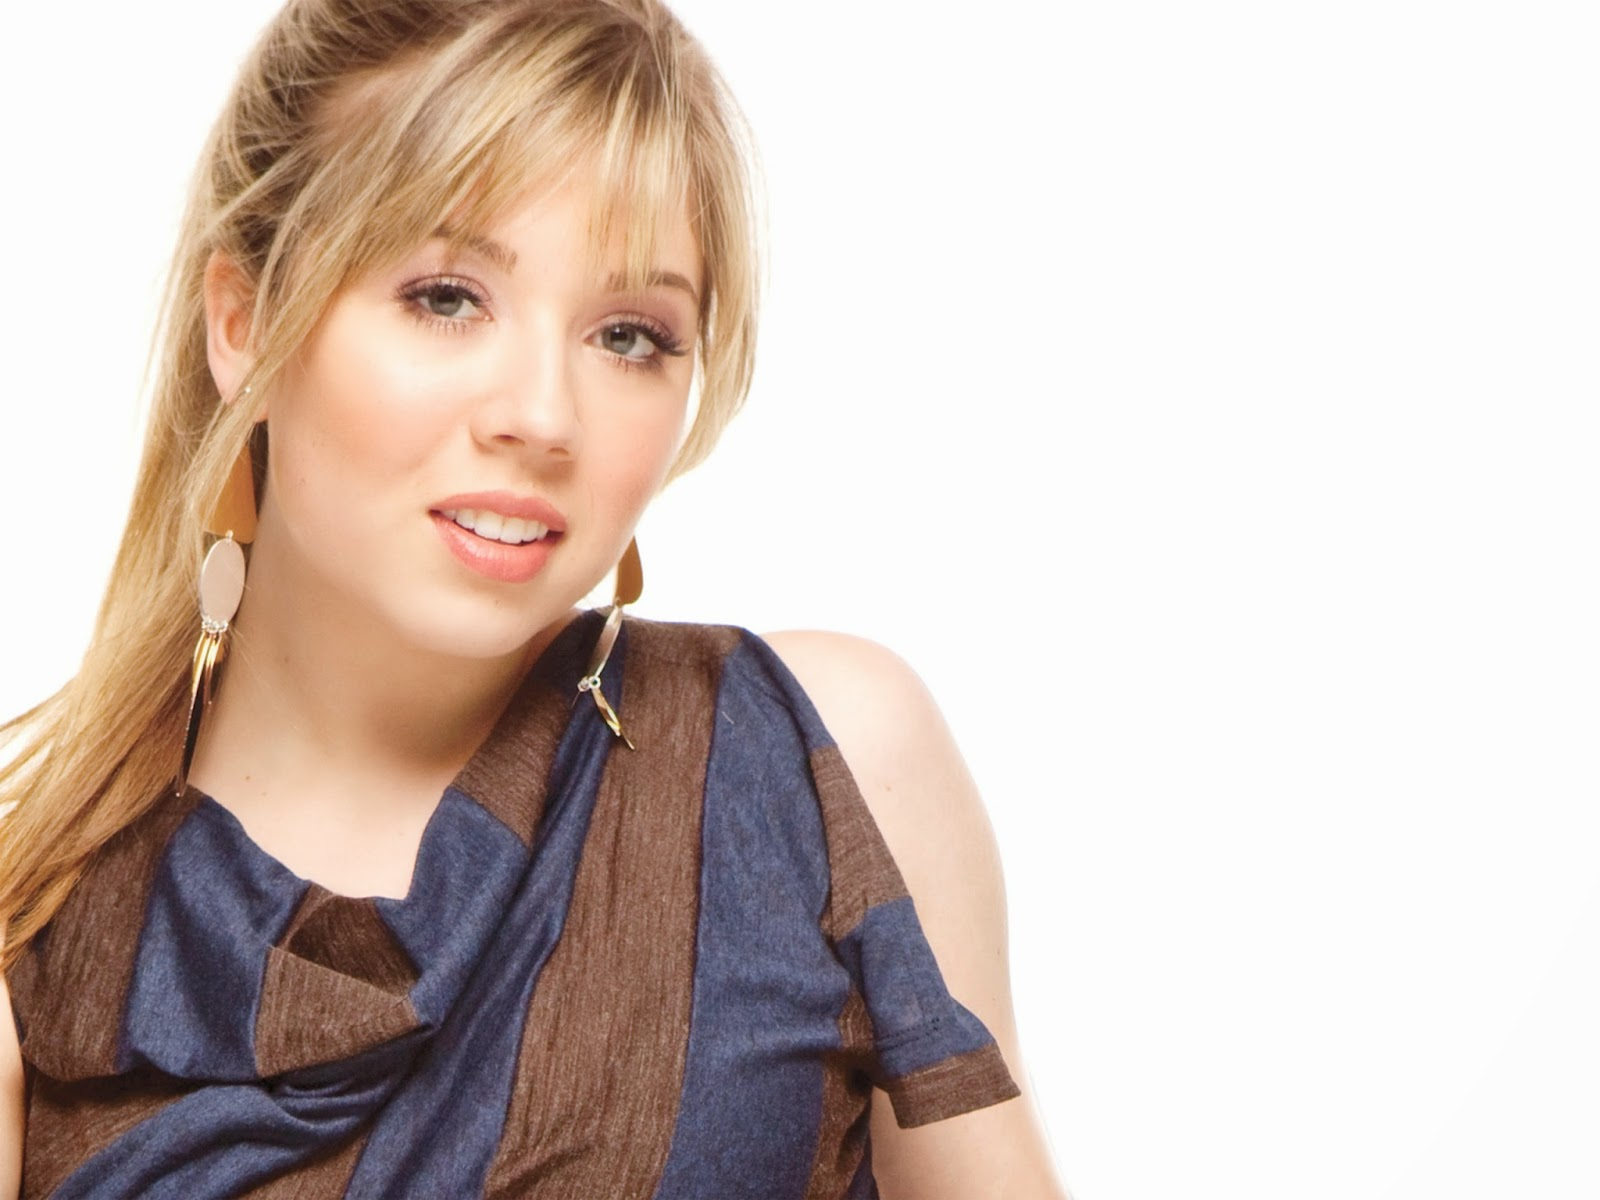 1600x1200 - Jennette McCurdy Wallpapers 19